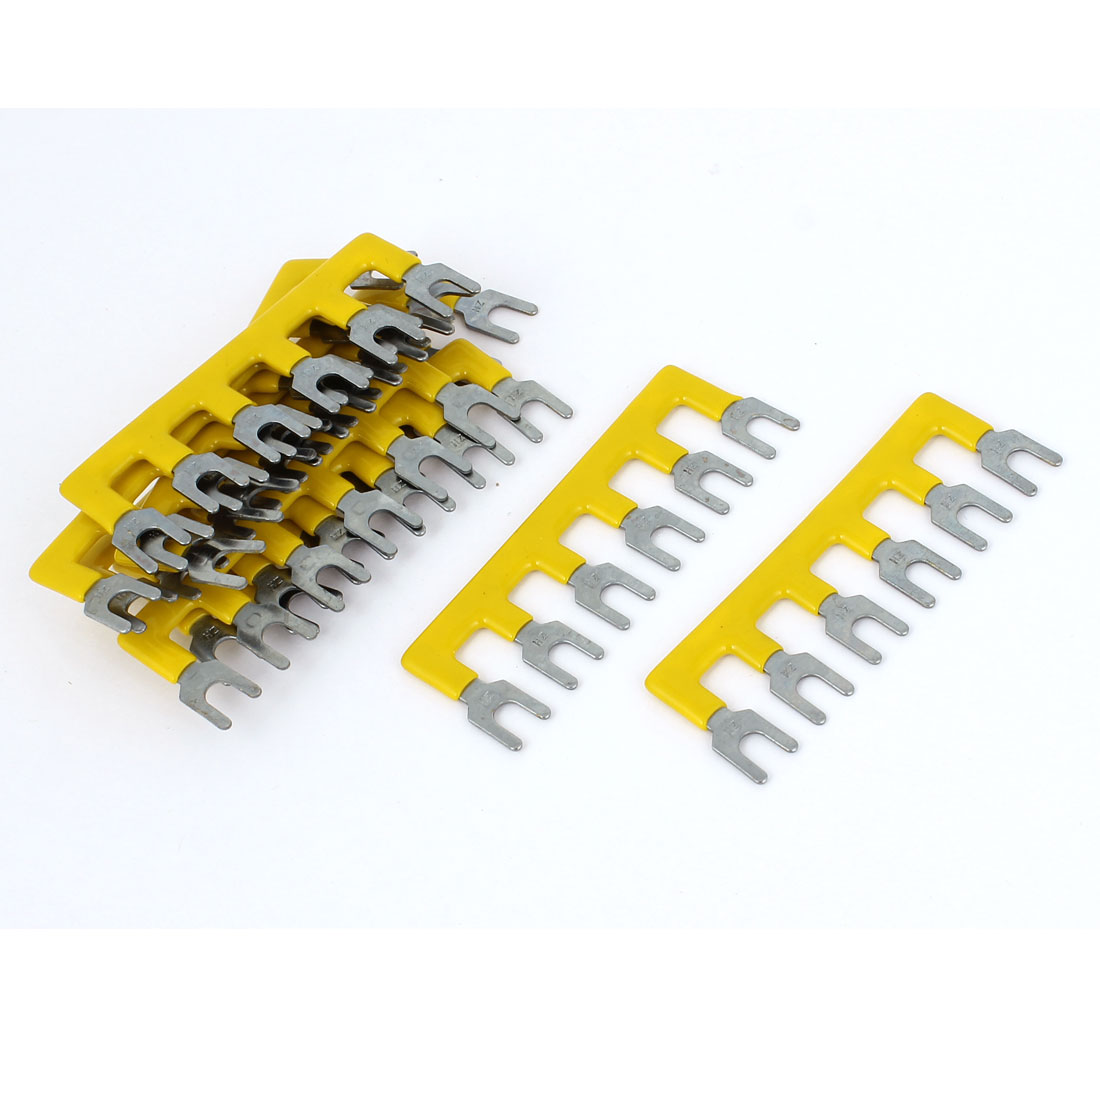 10pcs TB2506 6P Wire Connector Pre Insulated Fork Terminal Strip Yellow 400V 10A